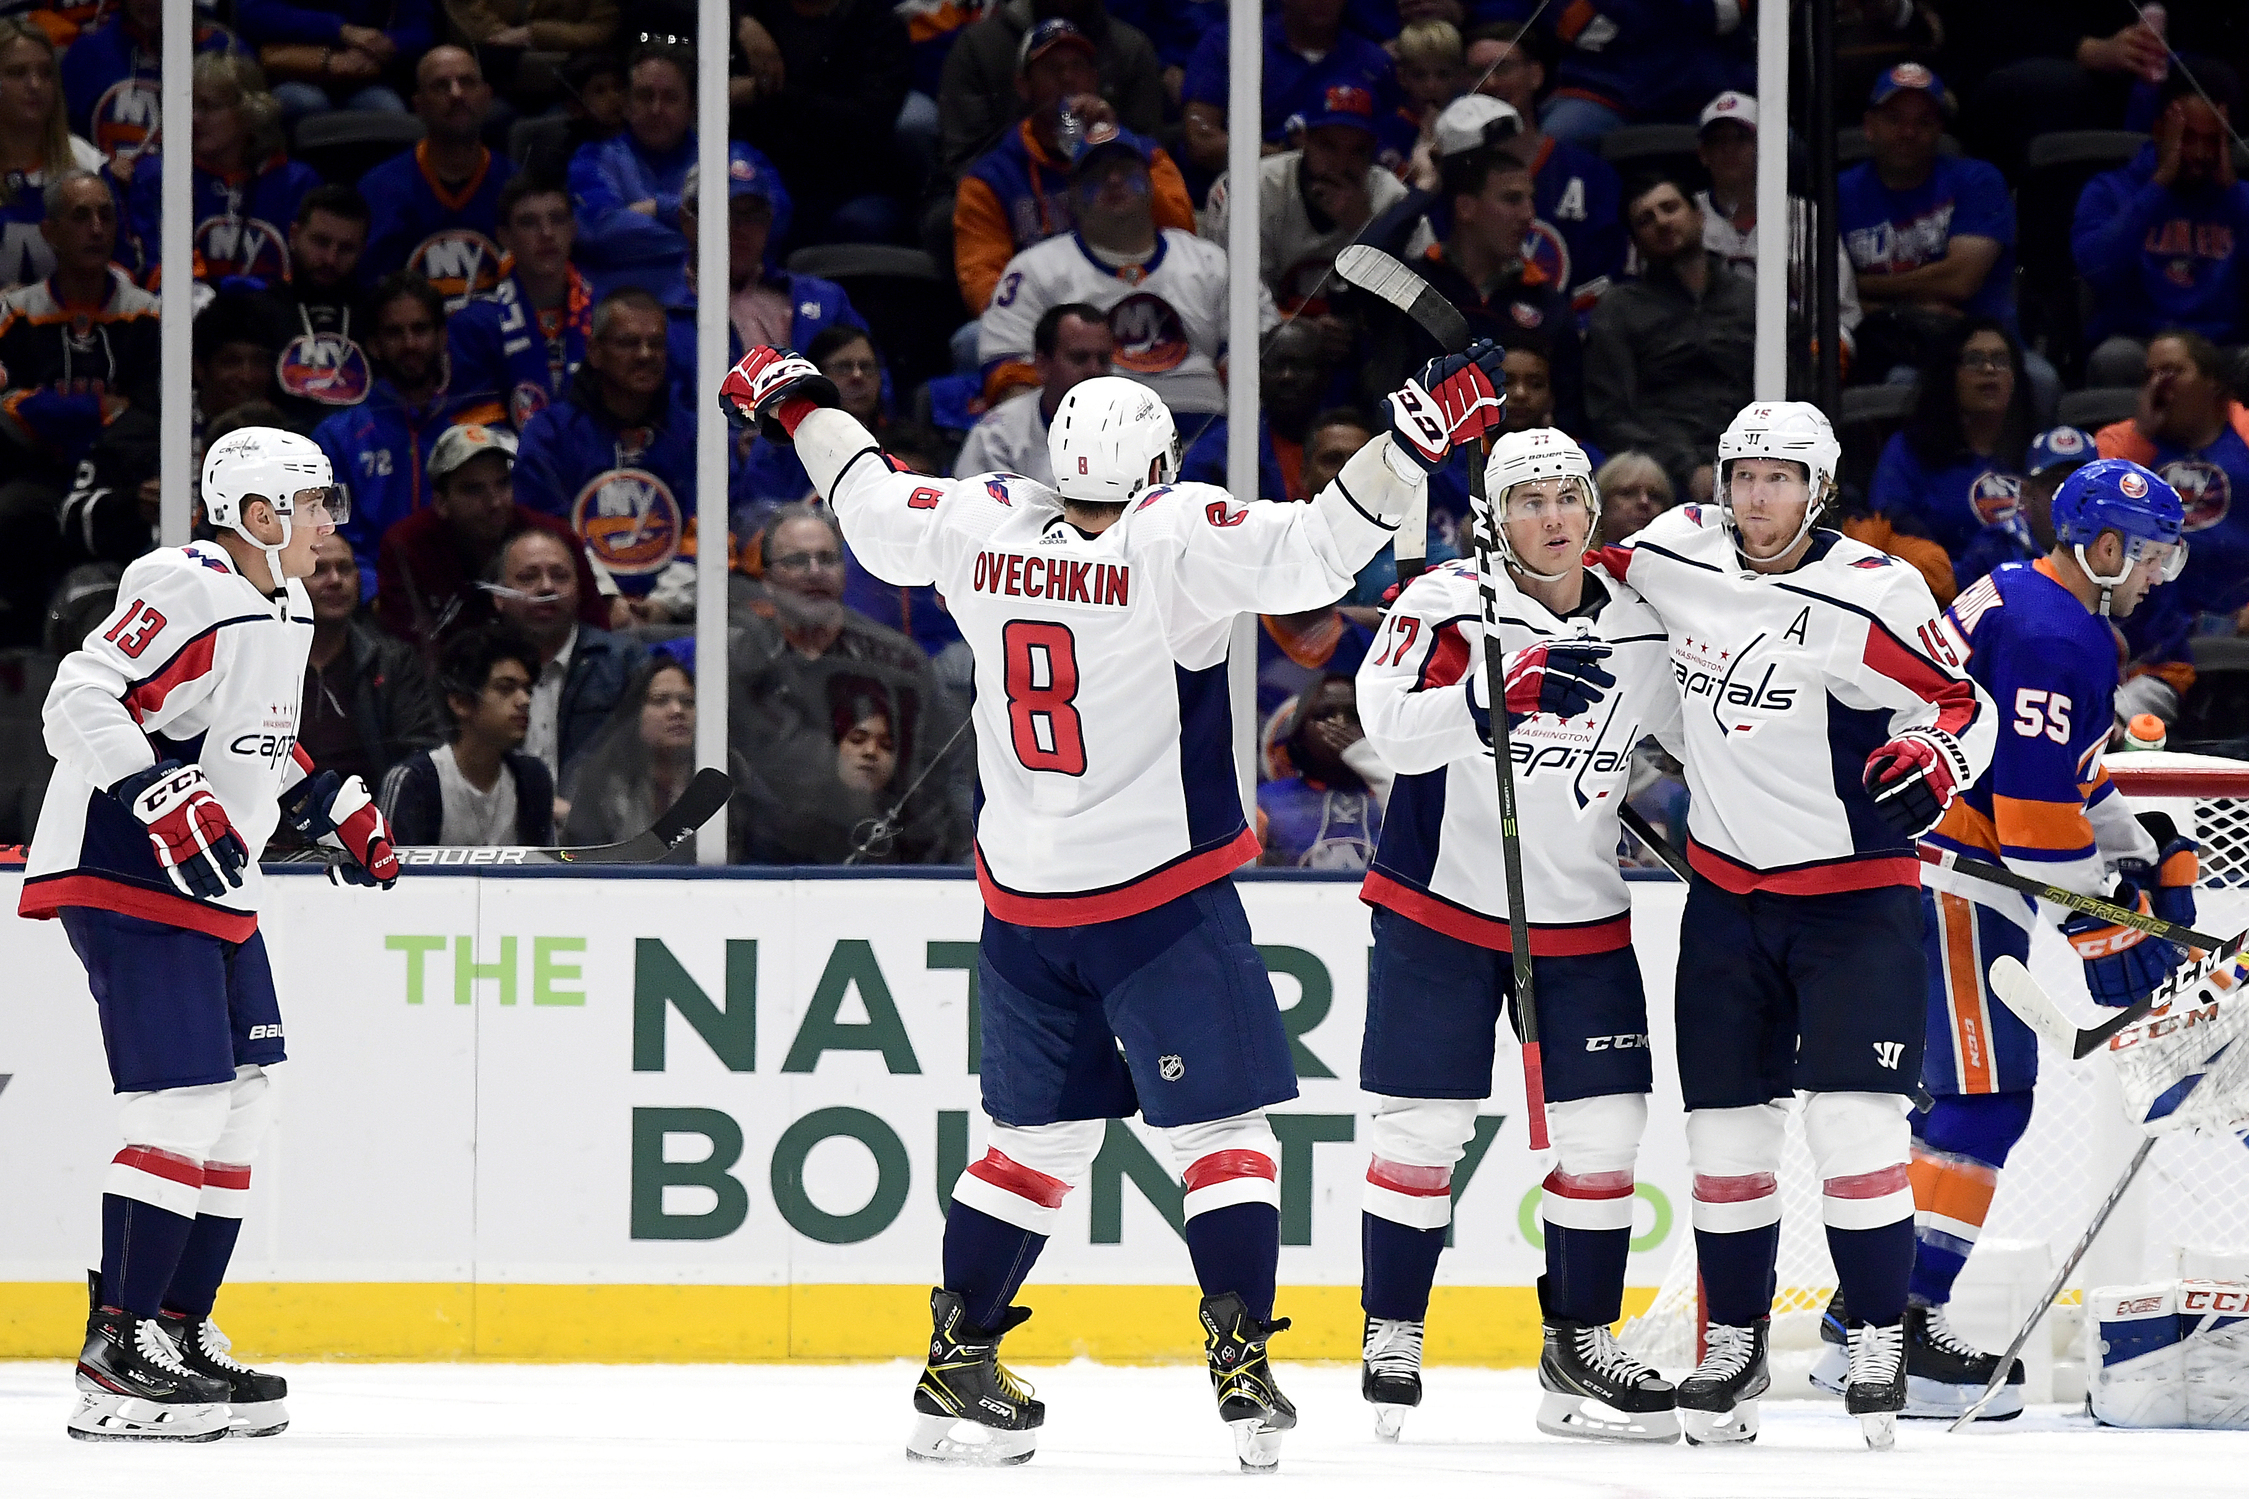 Samsonov wins NHL debut as Capitals beat Islanders 2-1